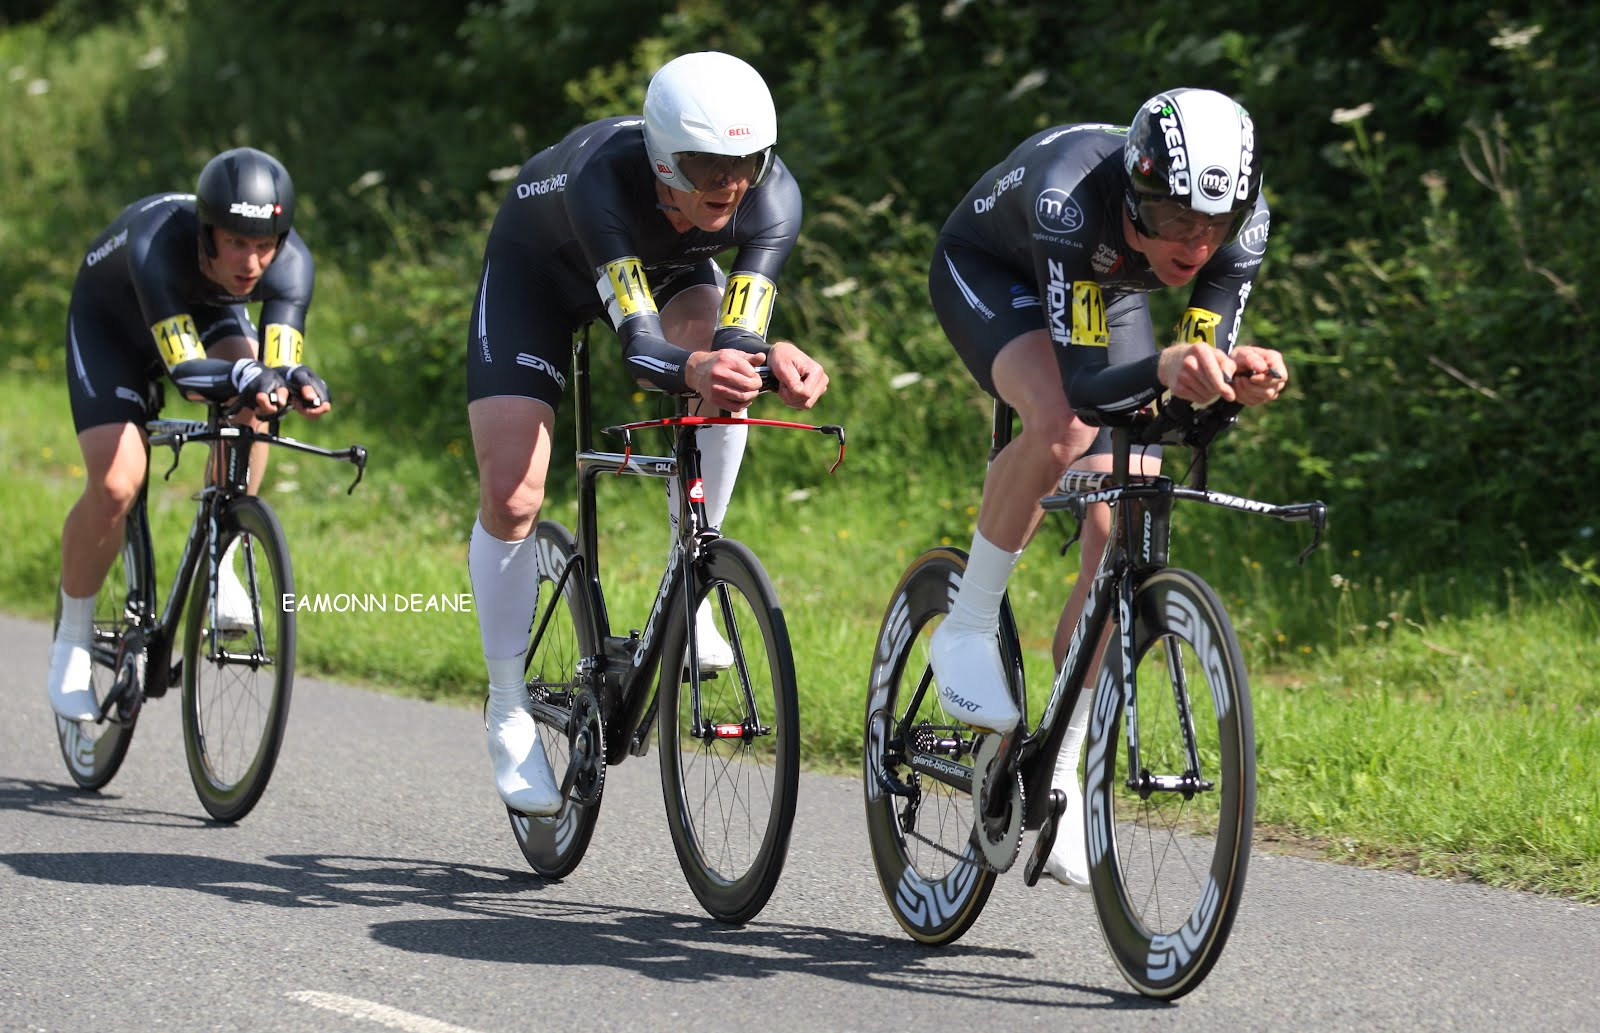 Local Riders Local Races Ctt National Team Time Trial Champs Gold For Bottrill Holton Mcculloch Photo from archive of m. local riders local races